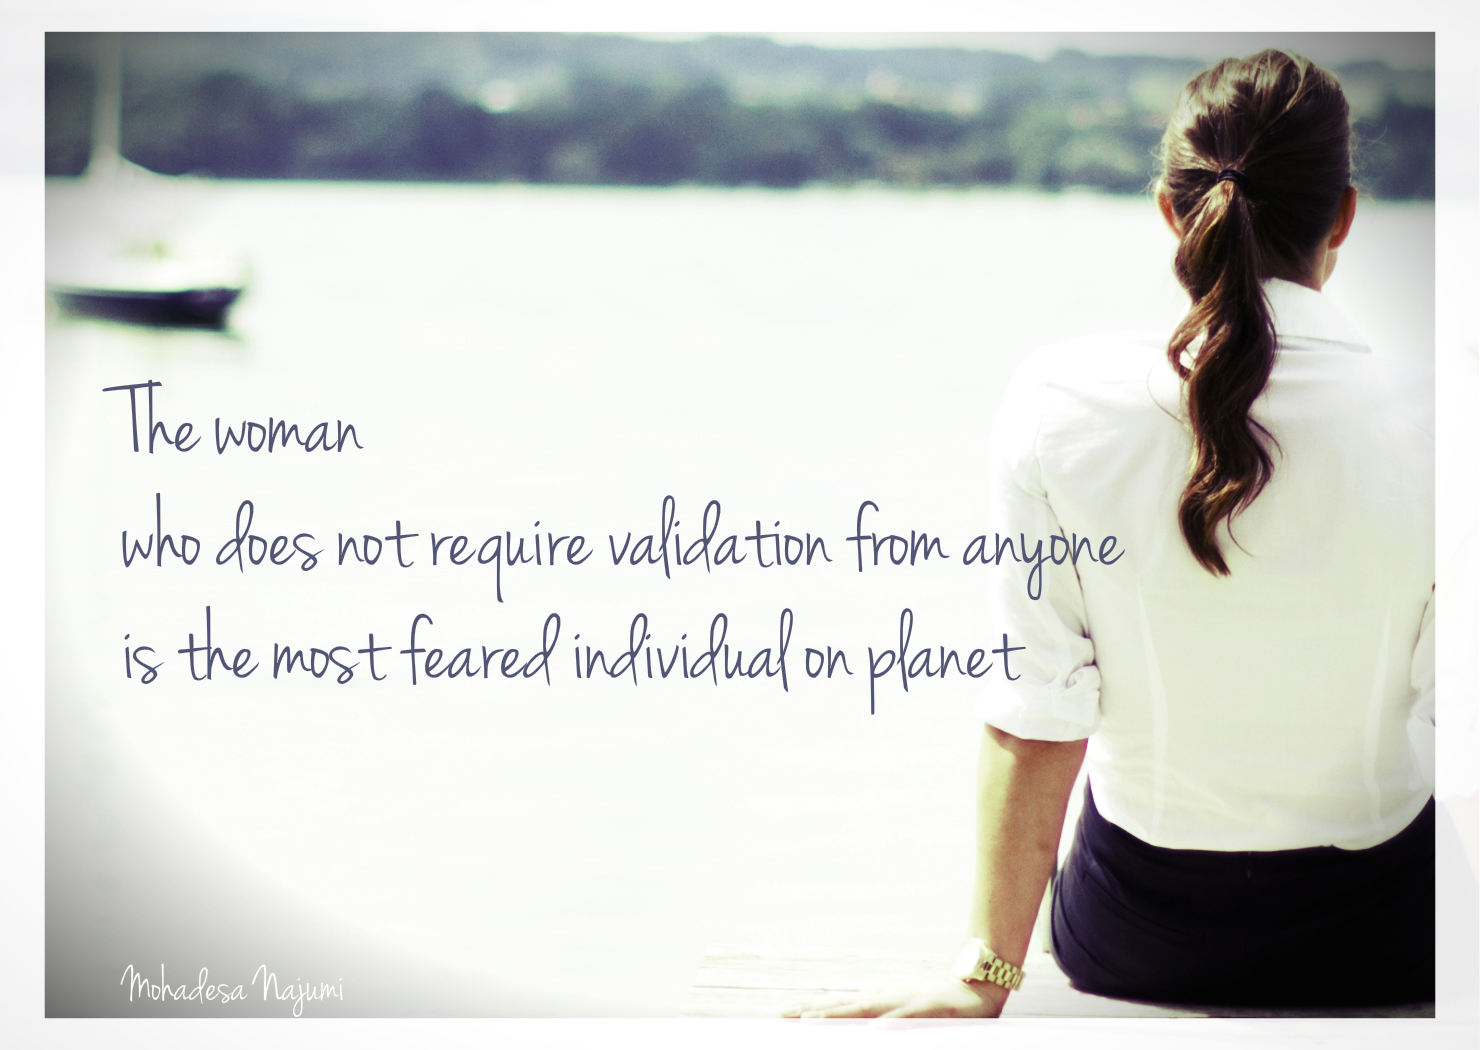 The woman who does not require validation from anyone is the most feared individual on planet.